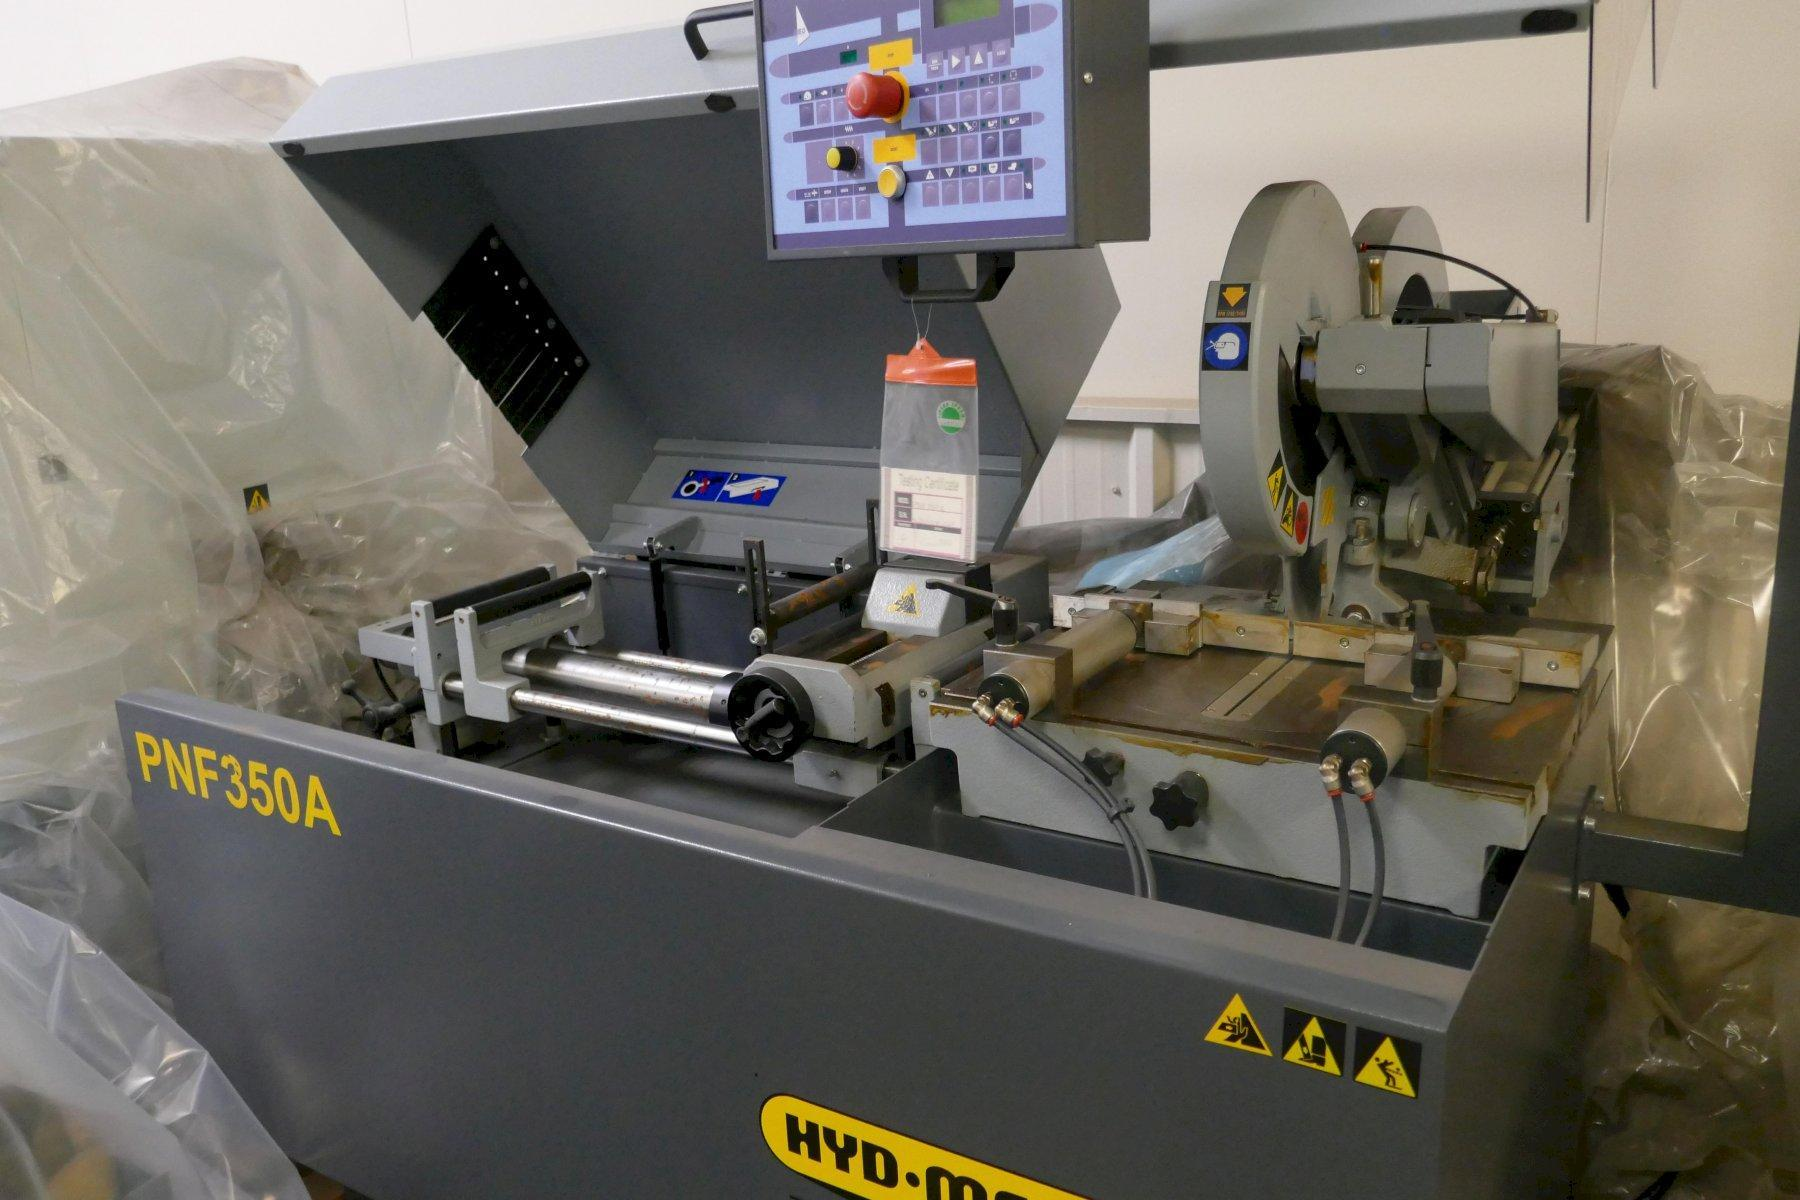 DEMO HYD-MECH MODEL PNF 350A FULLY AUTOMATIC NON-FERROUS CIRCULAR SAW (ALUMINUM), Stock # 10767, Year 2007